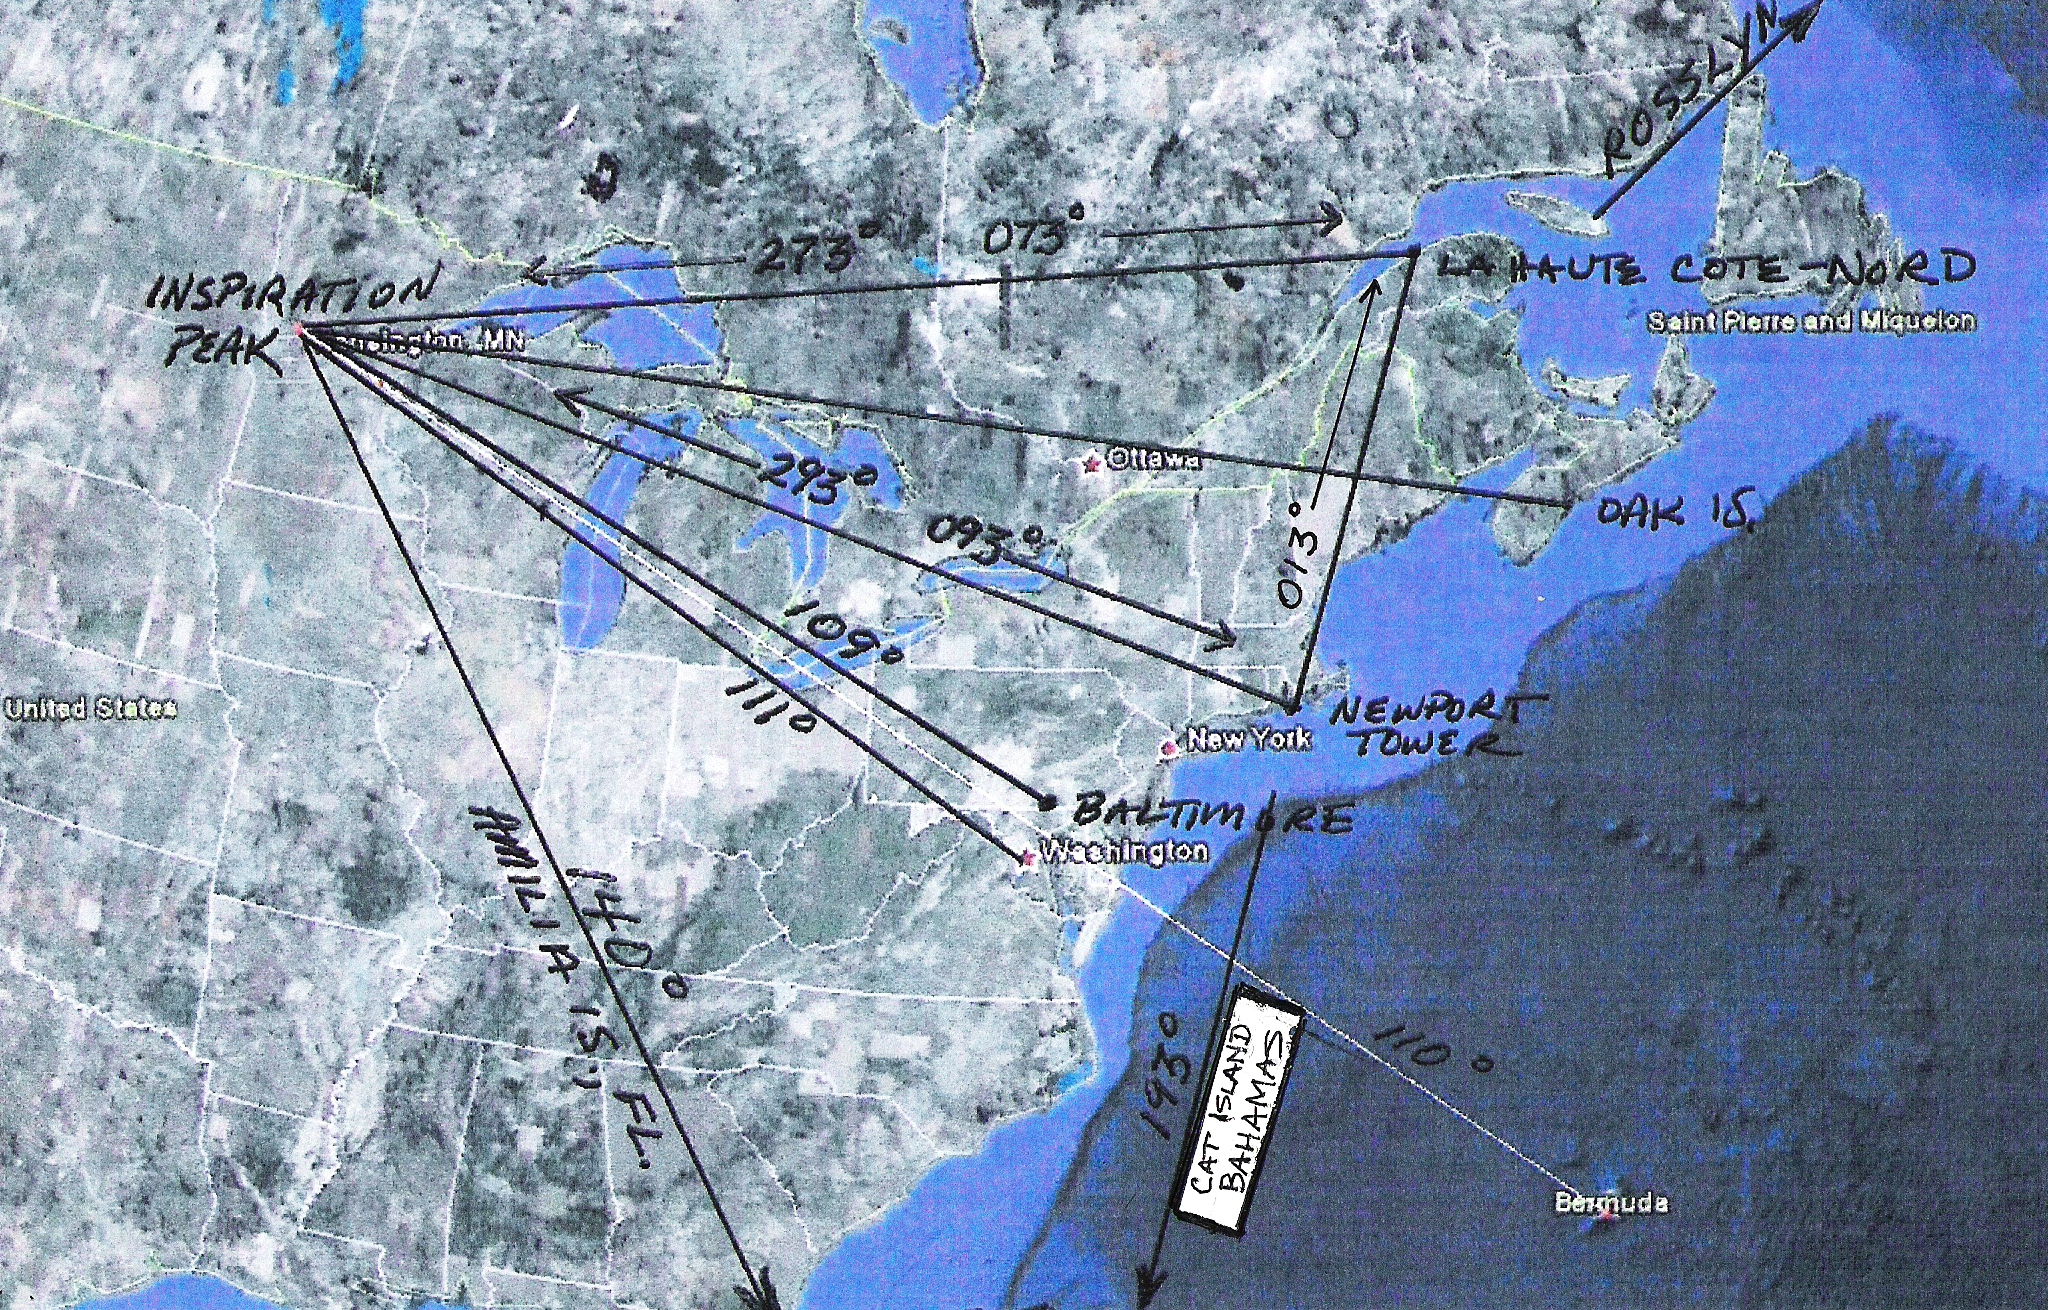 Newport Tower Mystery Solved - Washington dc map conspiracy